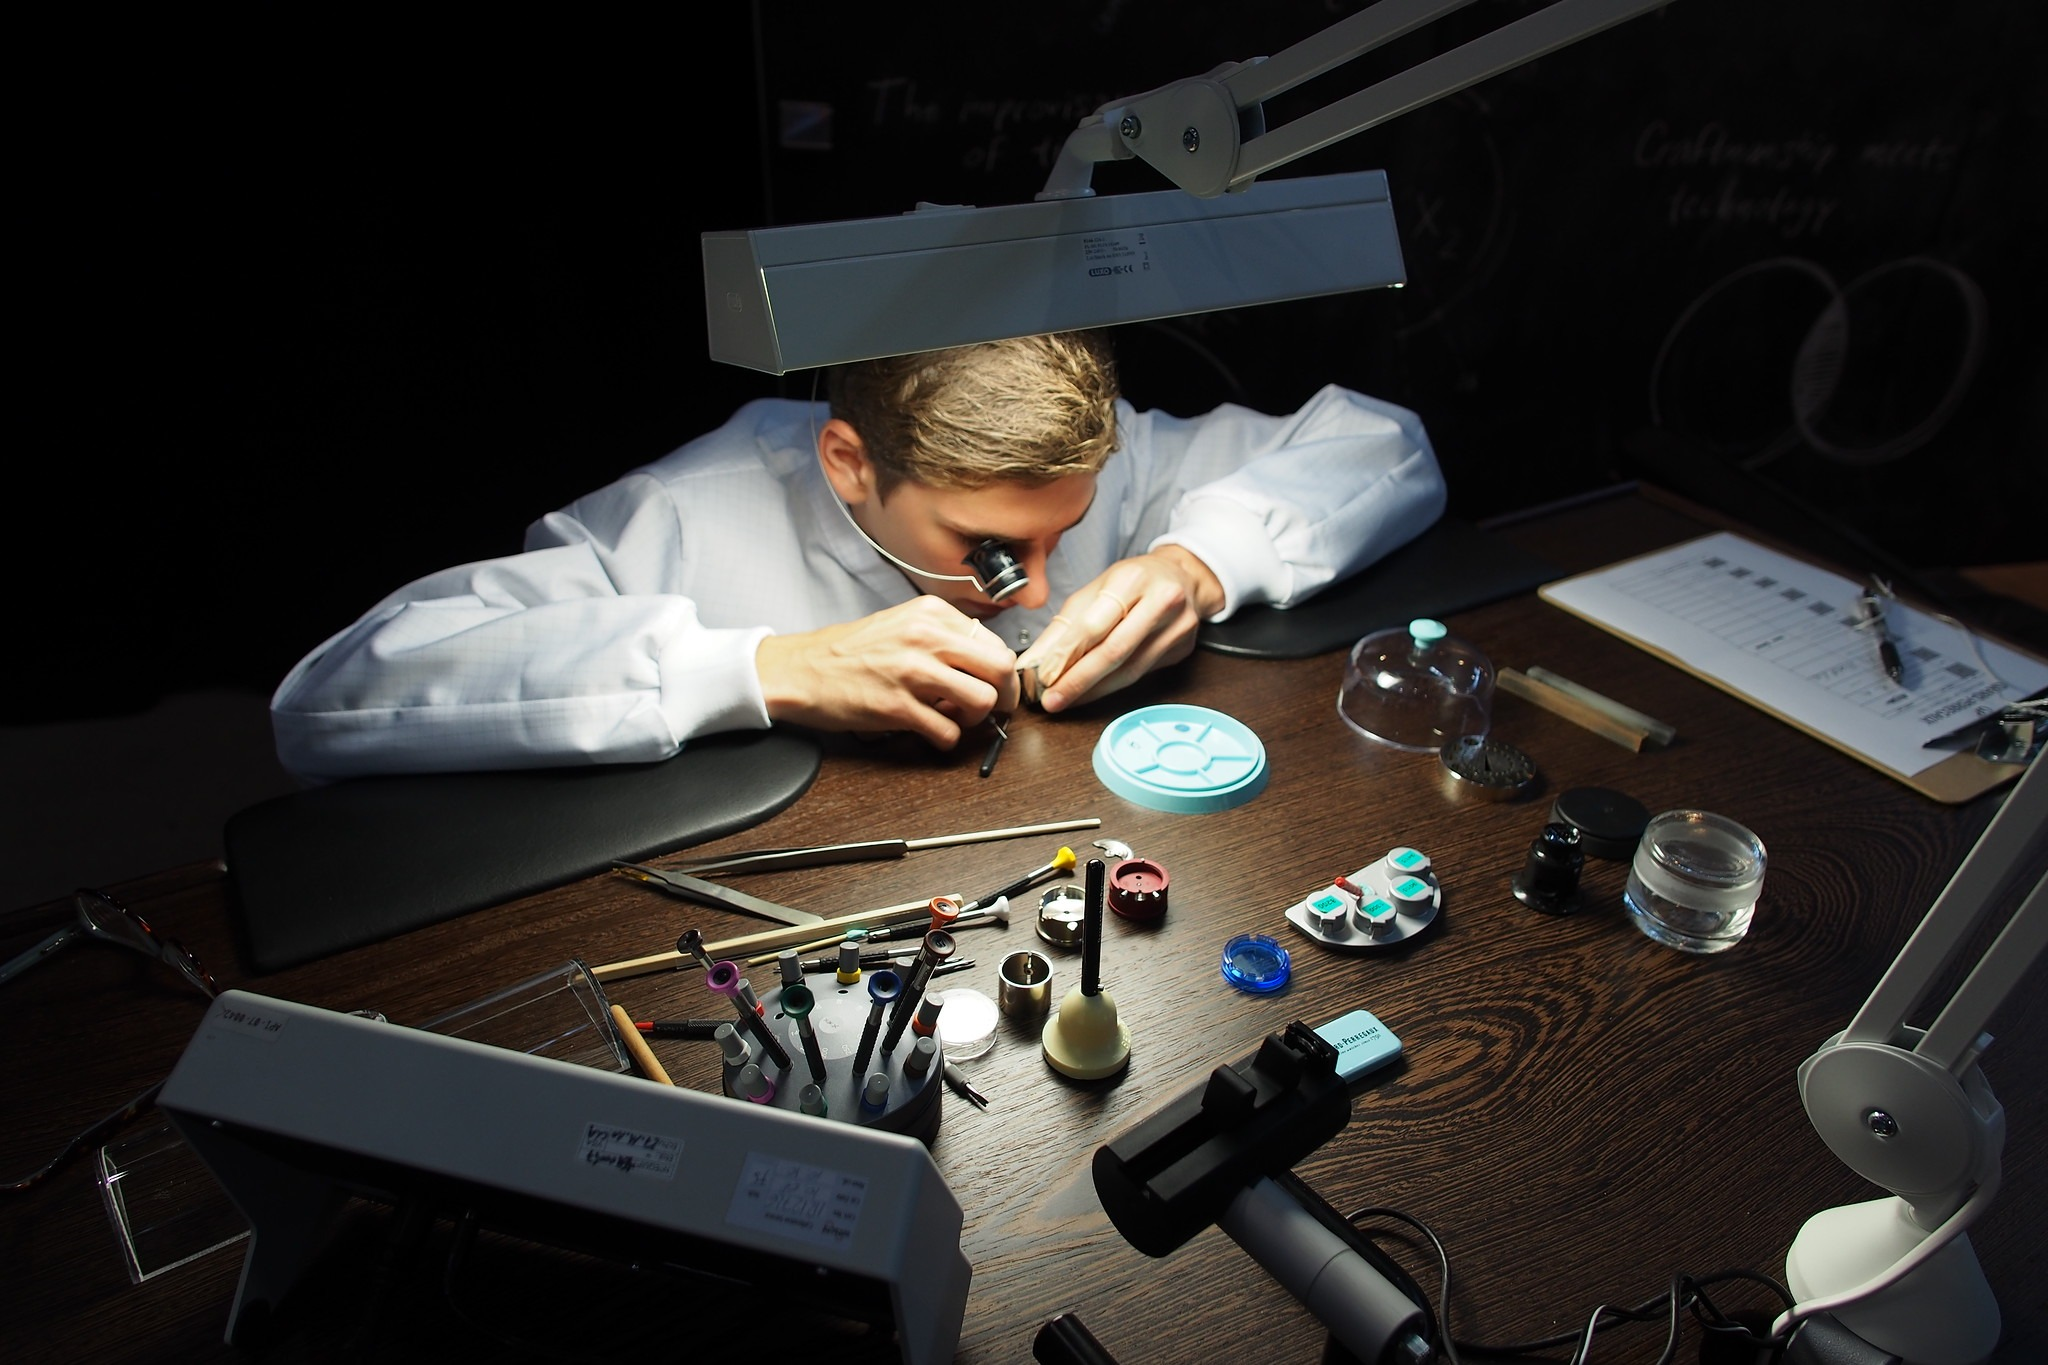 watchmaker assembling a watch